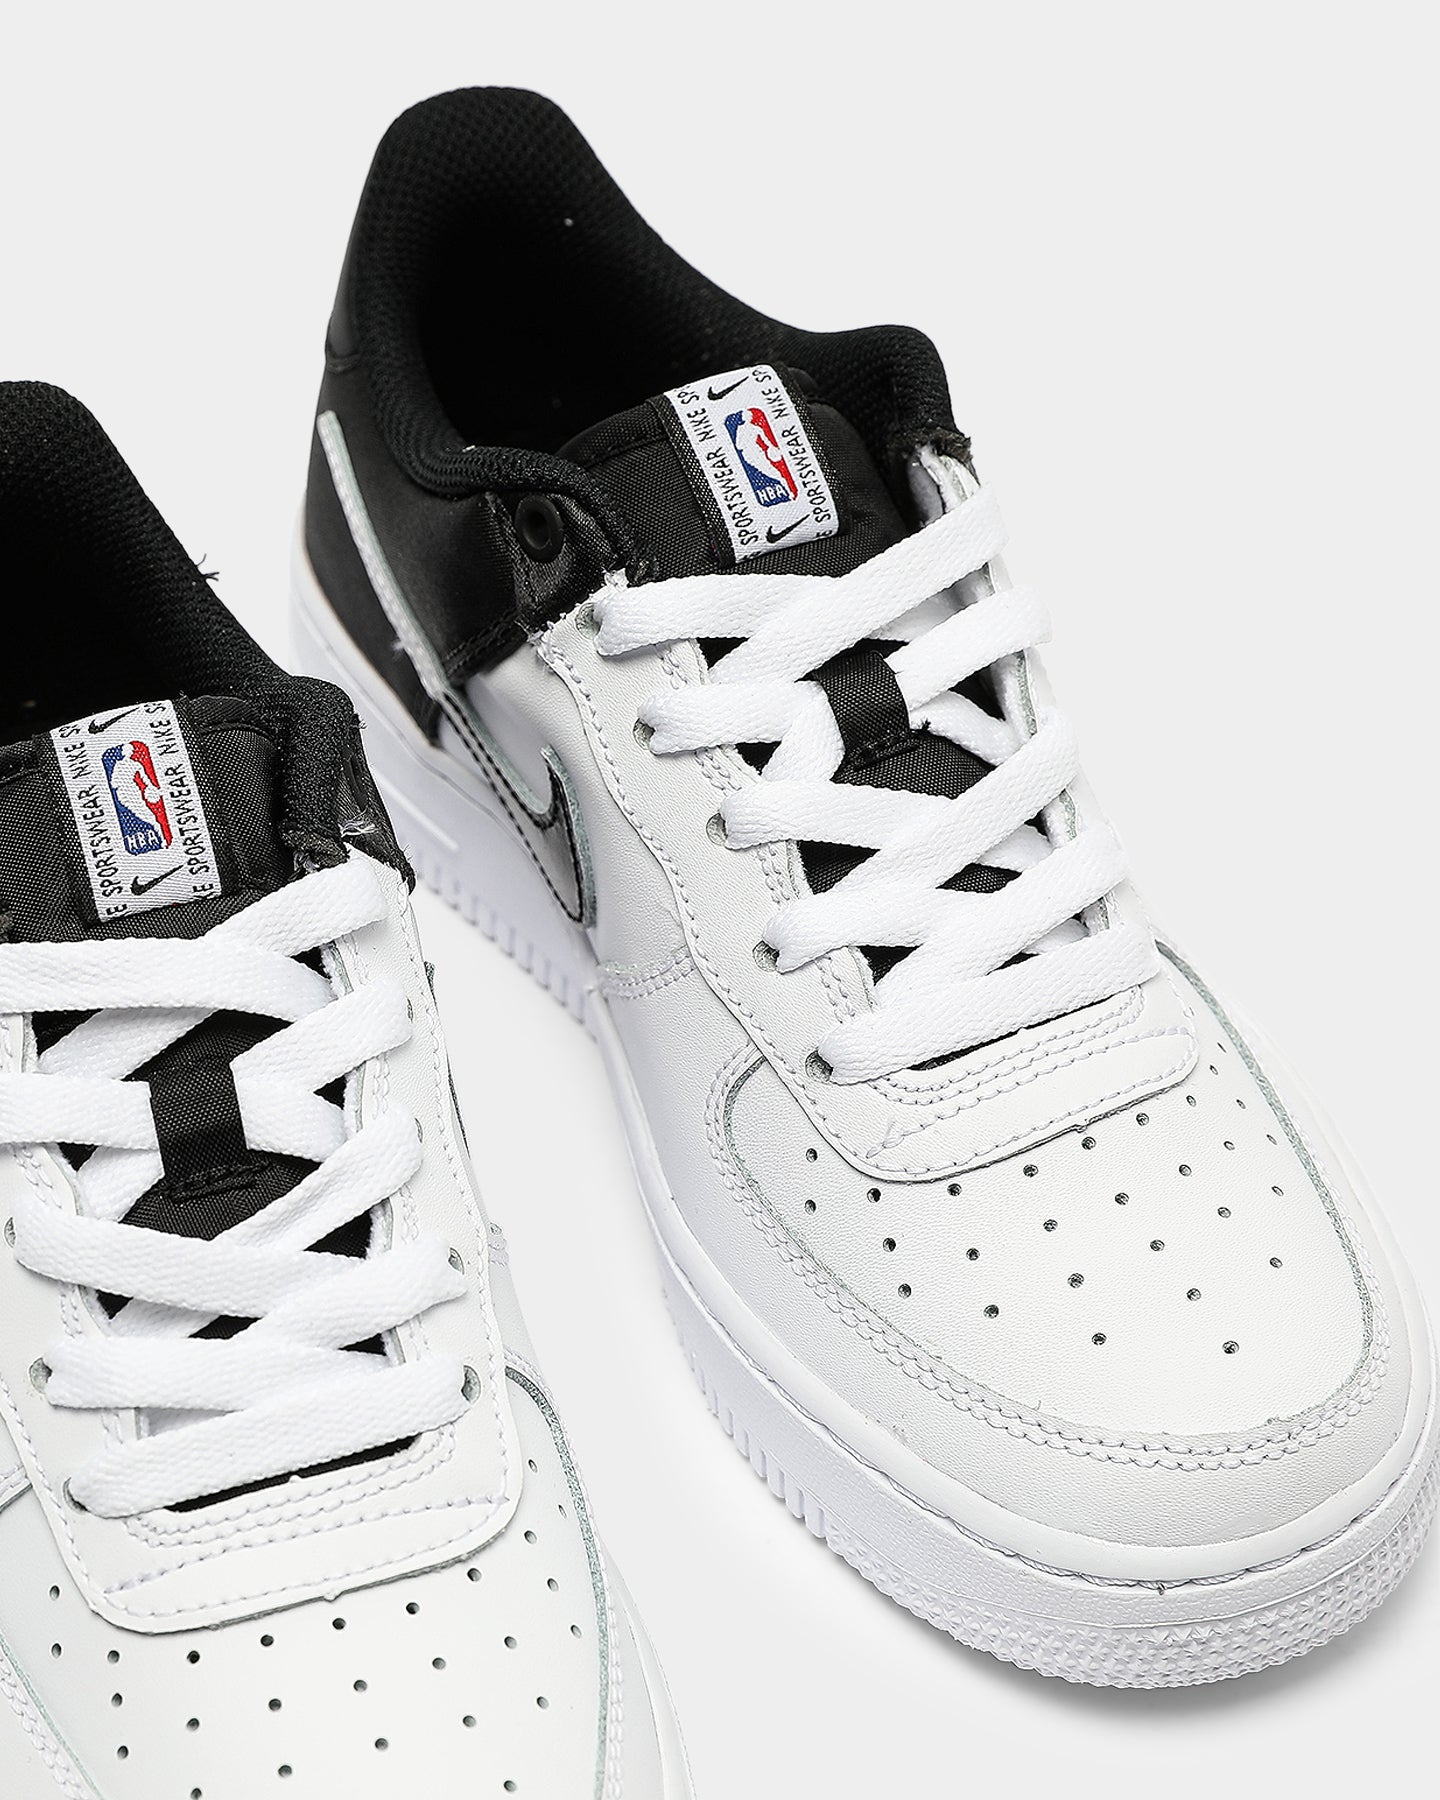 Nike Kids Air Force 1 '07 LV8 1 WhiteBlackWhite